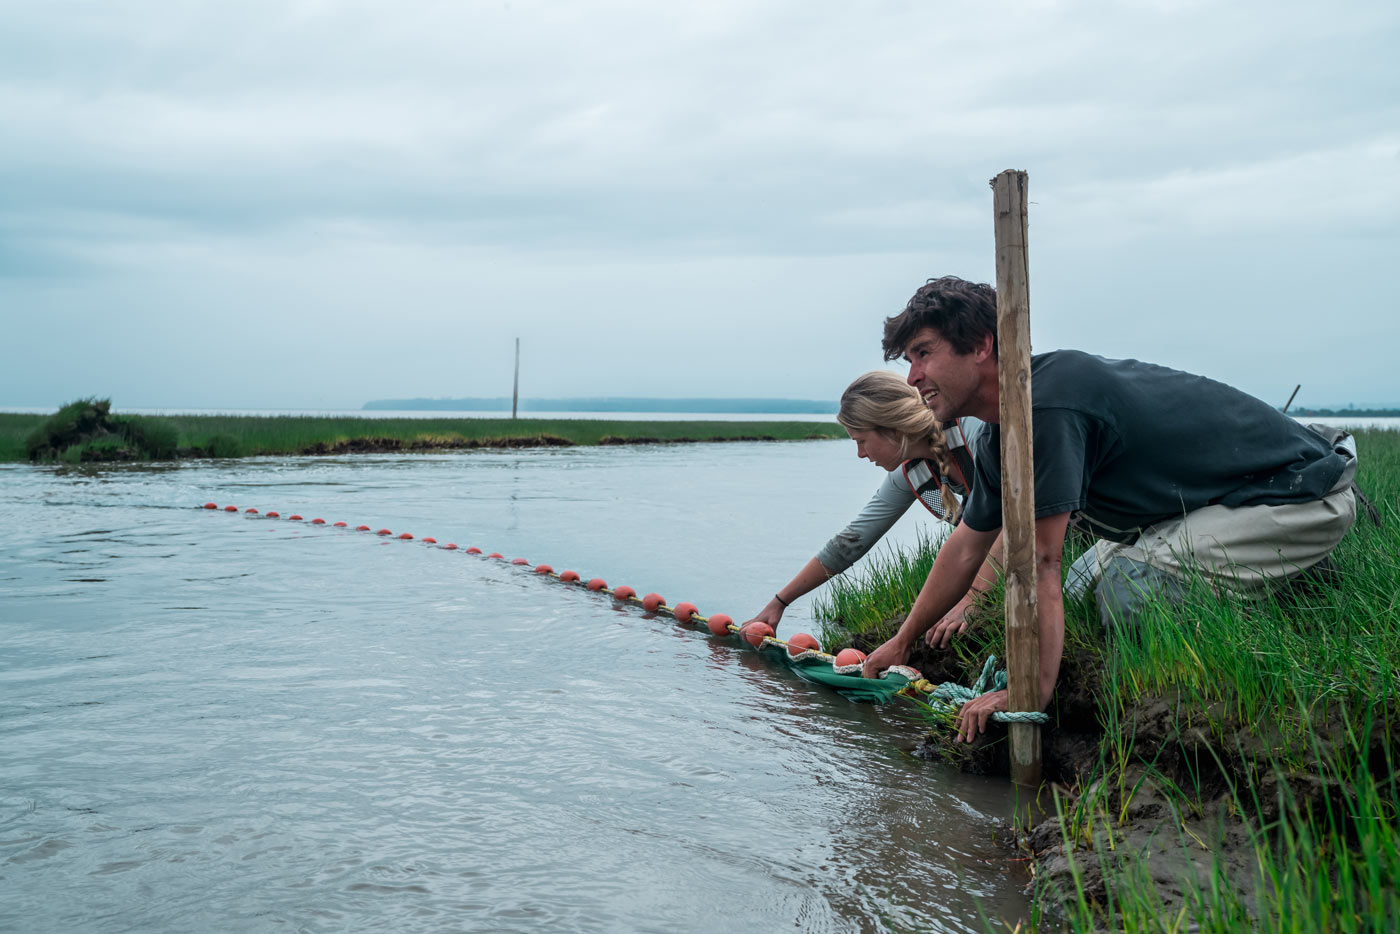 Two researchers squat on the banks of the Fraser river estuary. They are holding a long net in place stretching across the water under a grey blue sky.